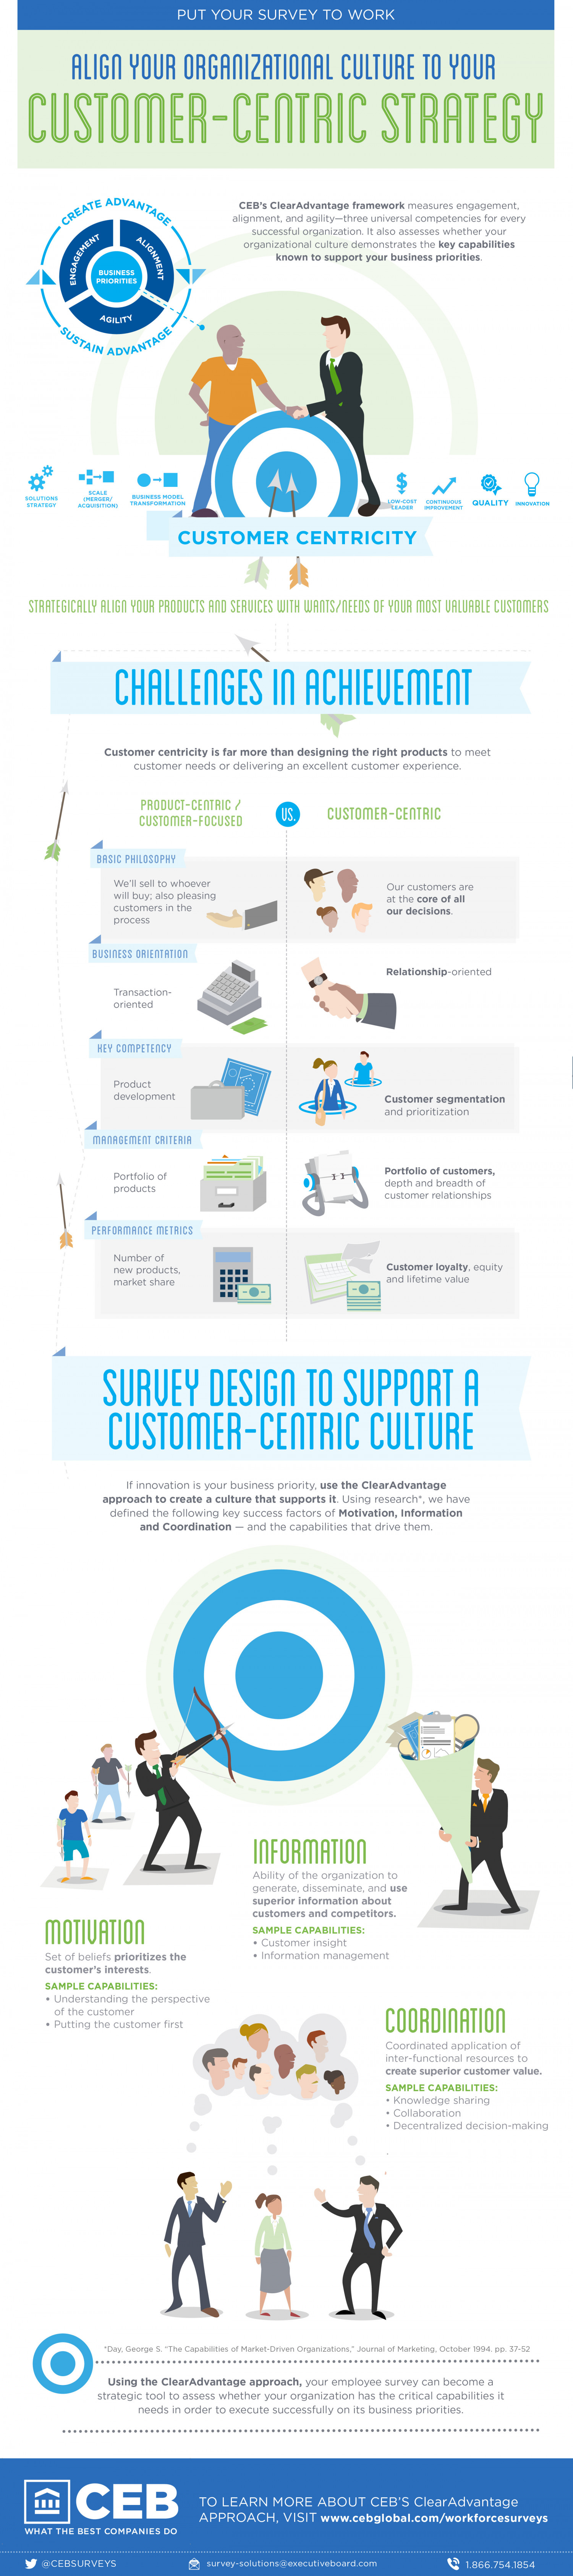 Align Your Organizational Culture to Your Customer-Centric Strategy Infographic